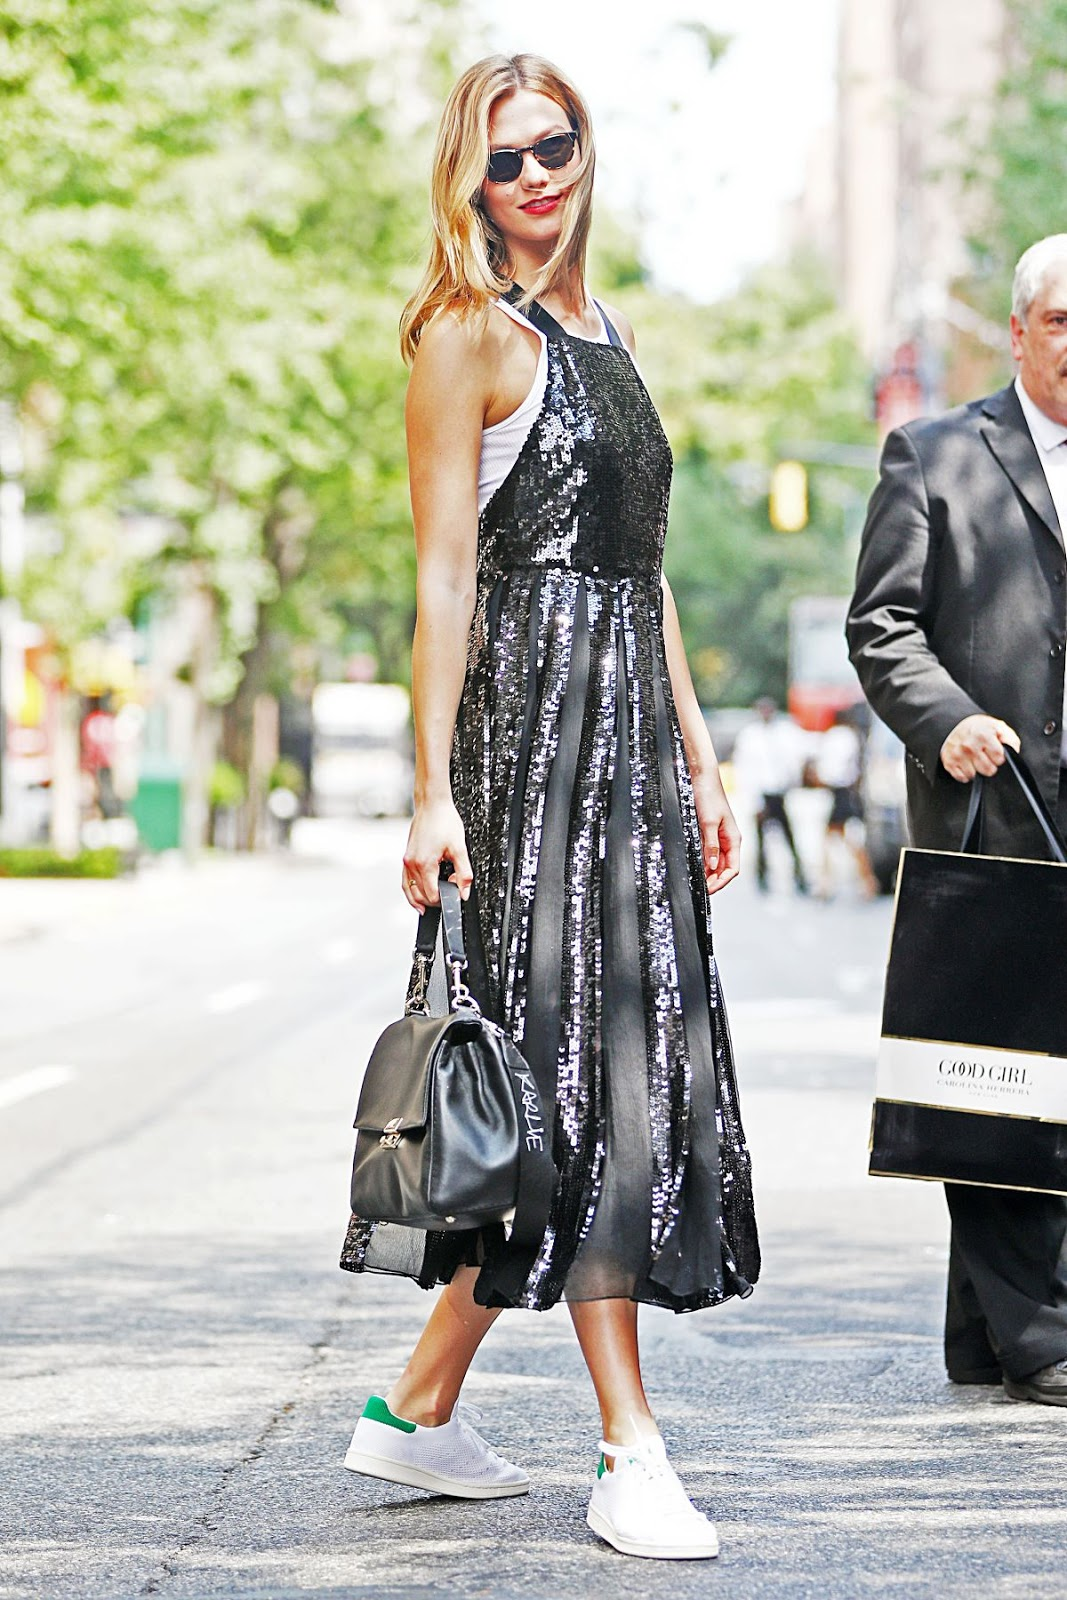 Karlie Kloss Wears Silver Sequins Out in NYC